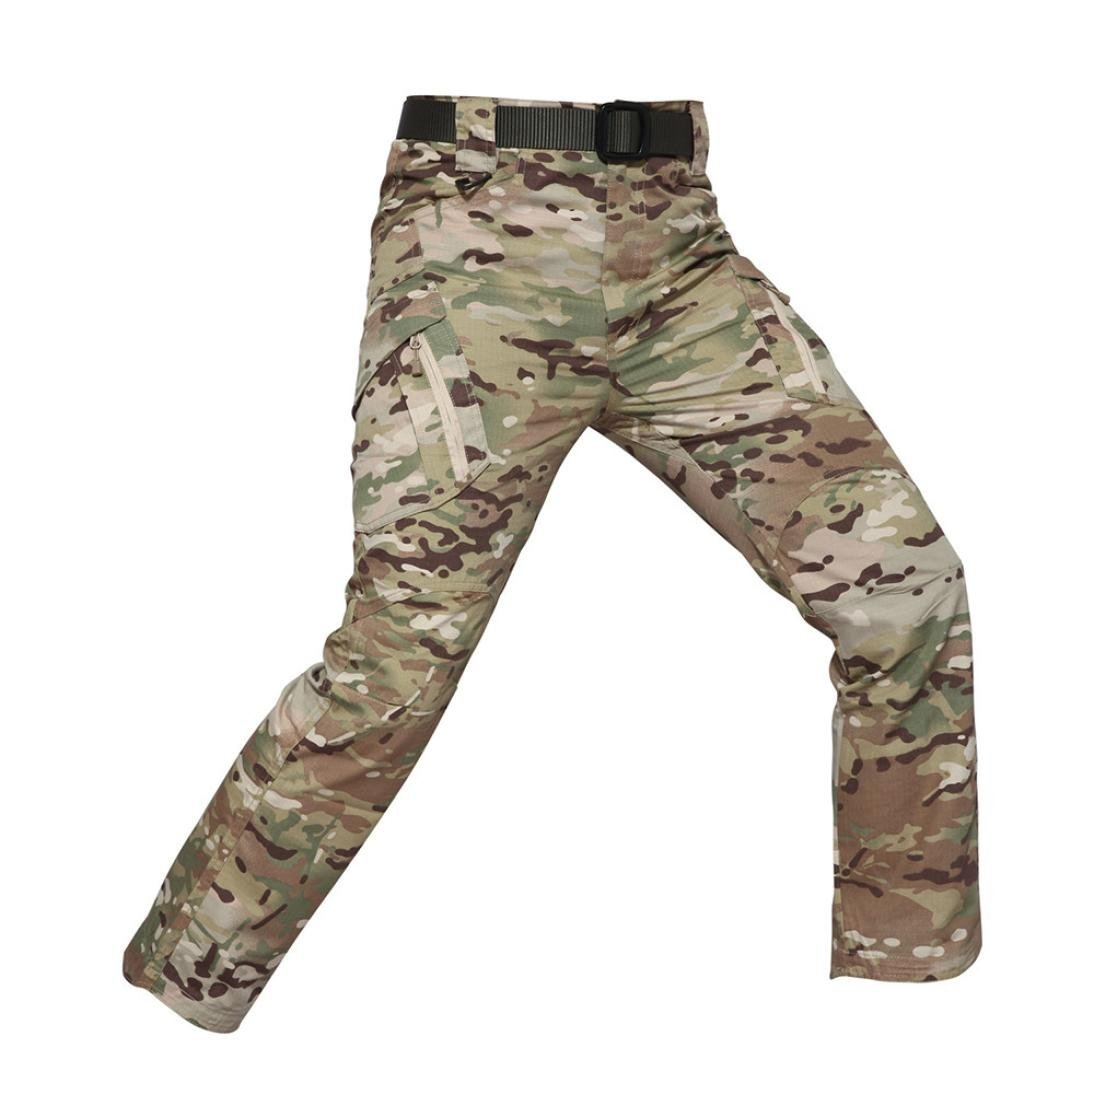 PASATO New!Men's Casual Tactical Military Army Combat Outdoors Work Trousers Cargo Pants(Multicolor , XXXL)